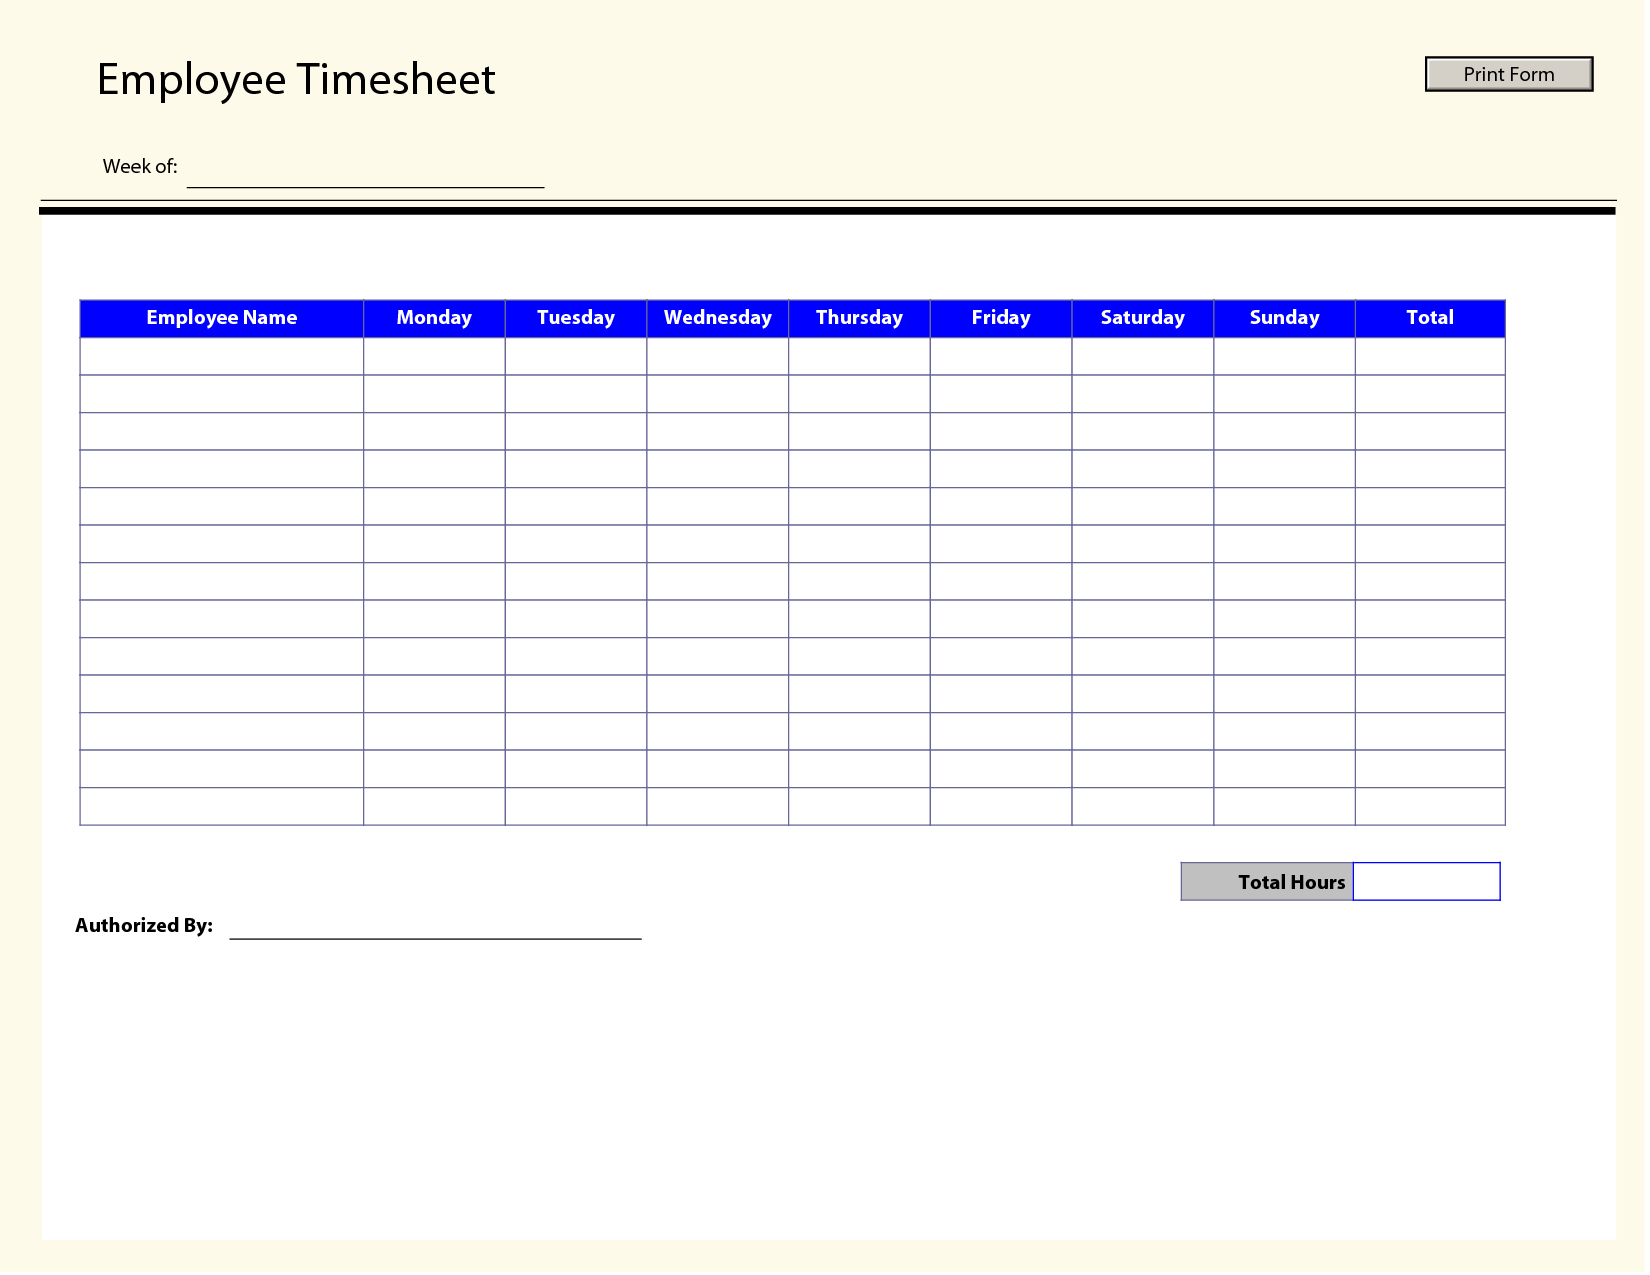 Blank Employee Timesheet Template | Management Templates | Pinterest - Free Printable Blank Time Sheets